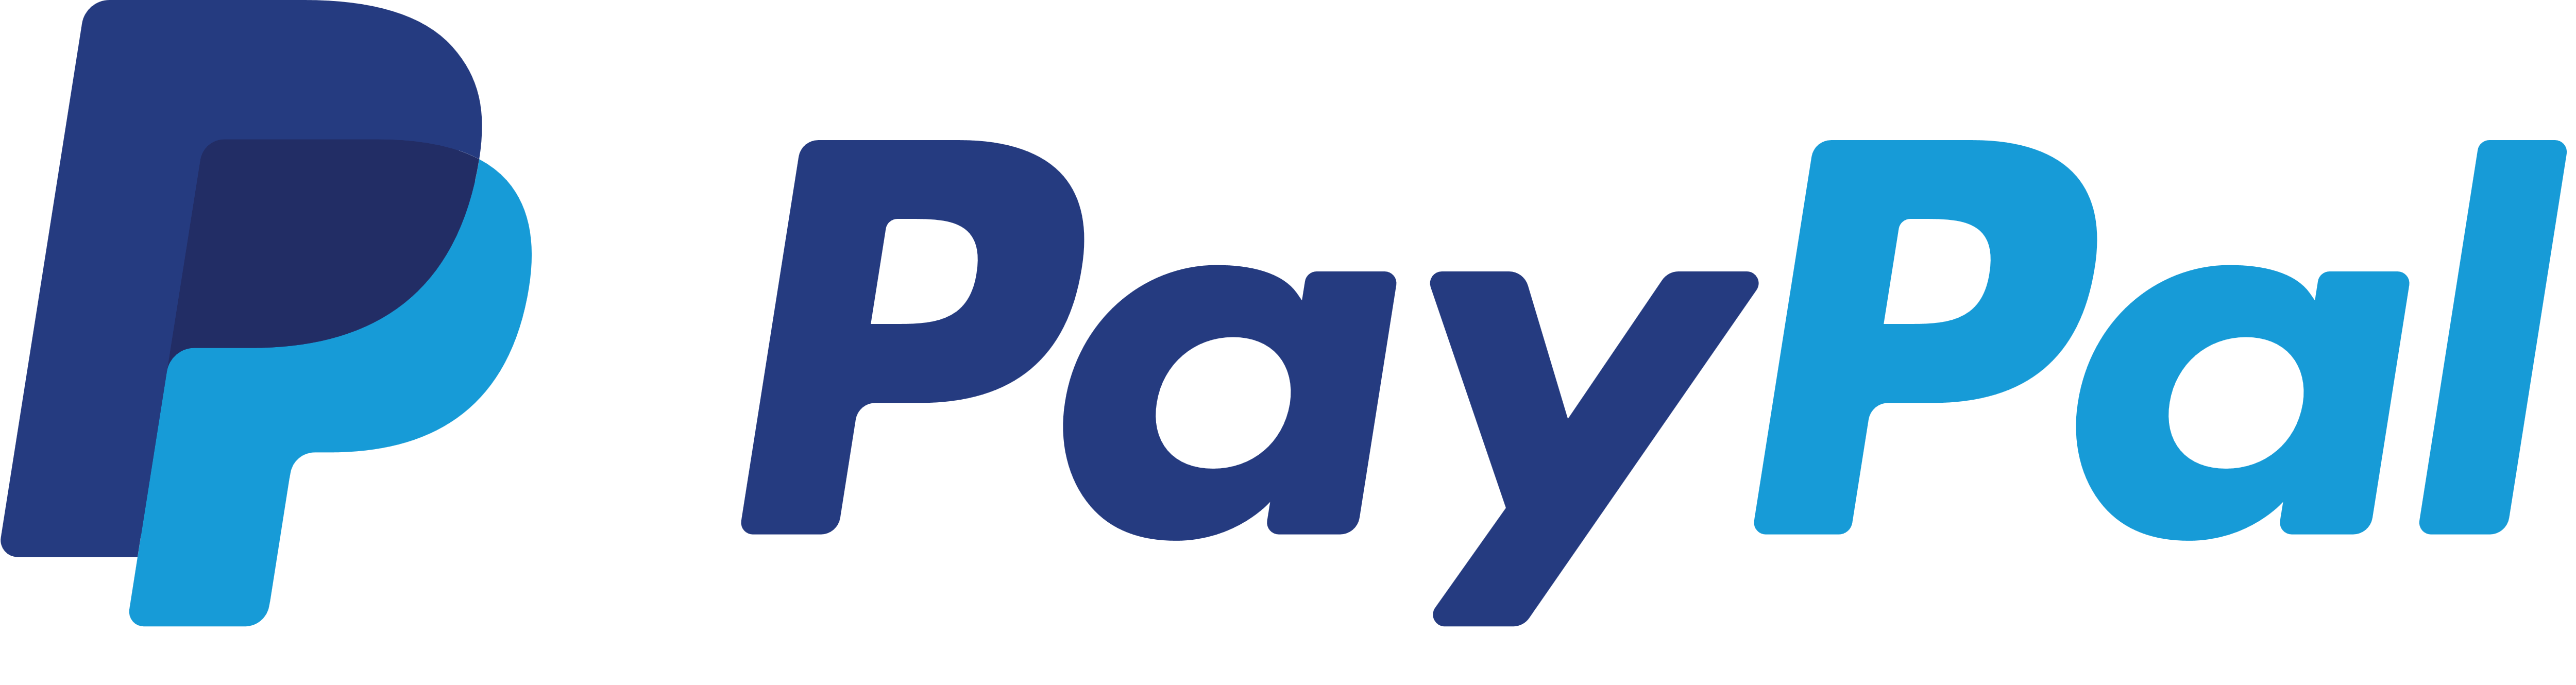 Top payment gateways for POS: Paypal